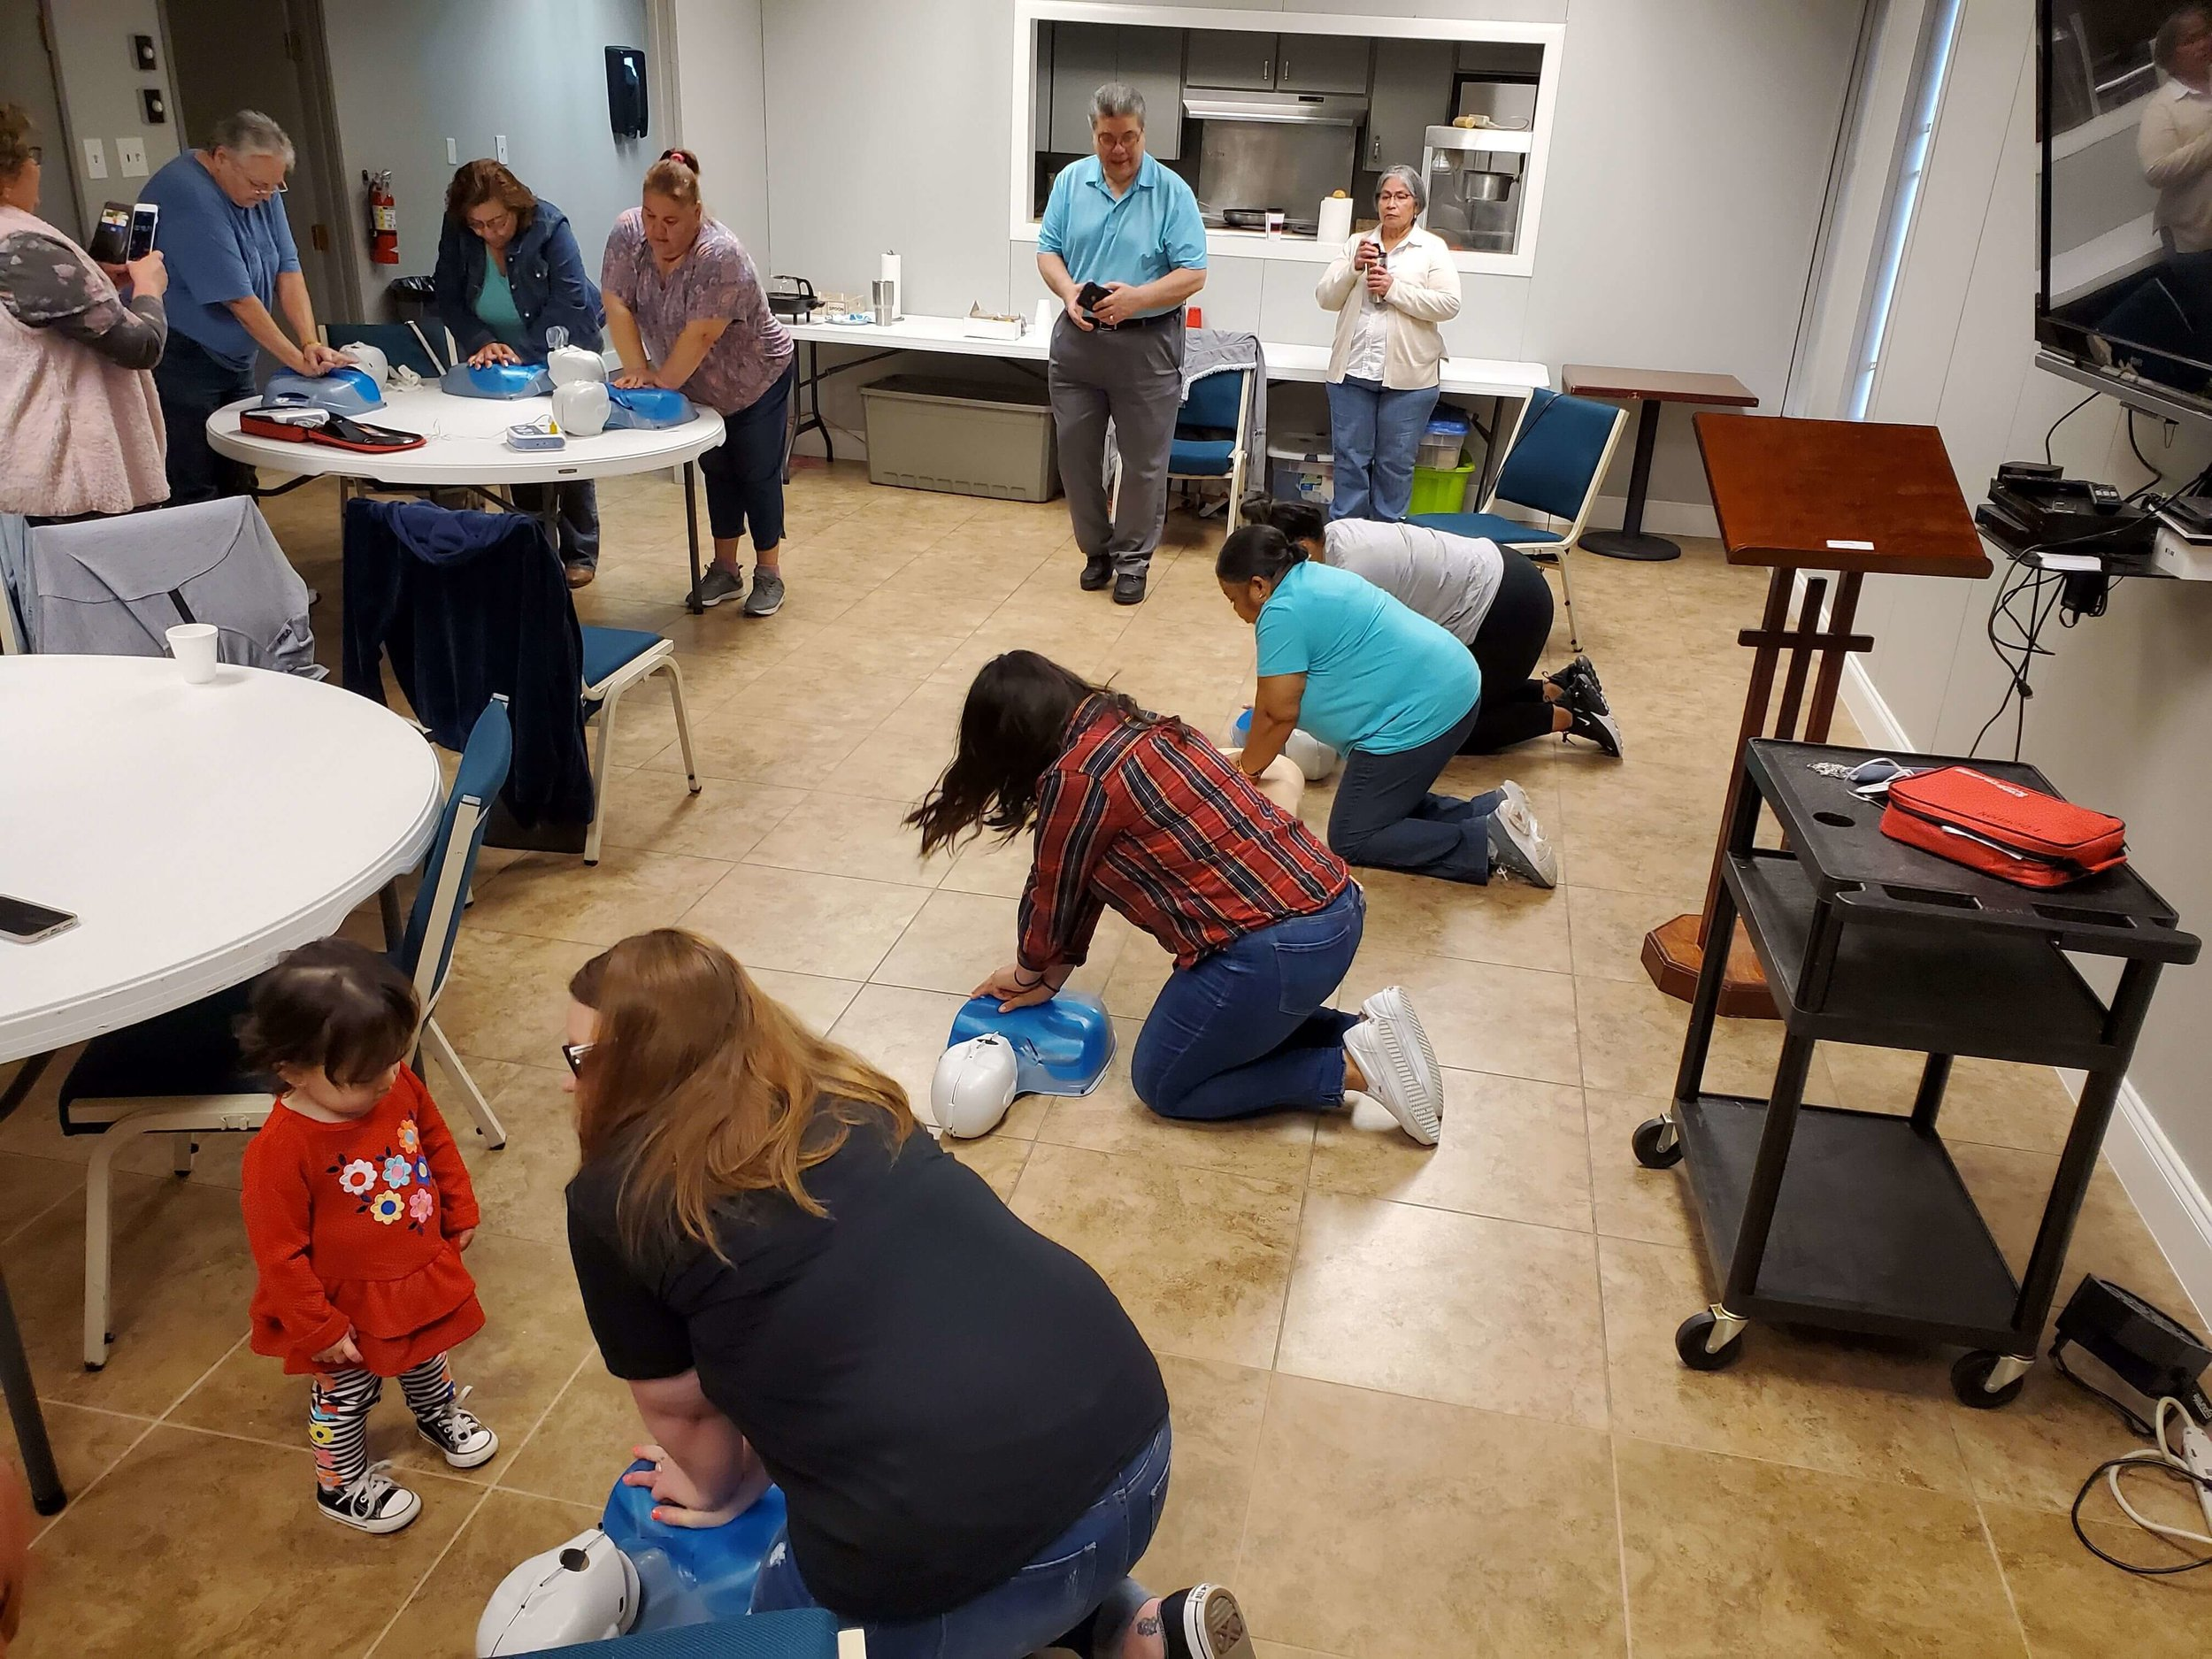 Dr. Kubo is a board member for the Mesquite Heart Board. This is a non-profit organization that focuses on educating the community about all things heart health. On March 30, 2019, Dr Kubo assisted Lisa Fox (President of the Mesquite Heart Board) teach a local congregation hands only CPR.